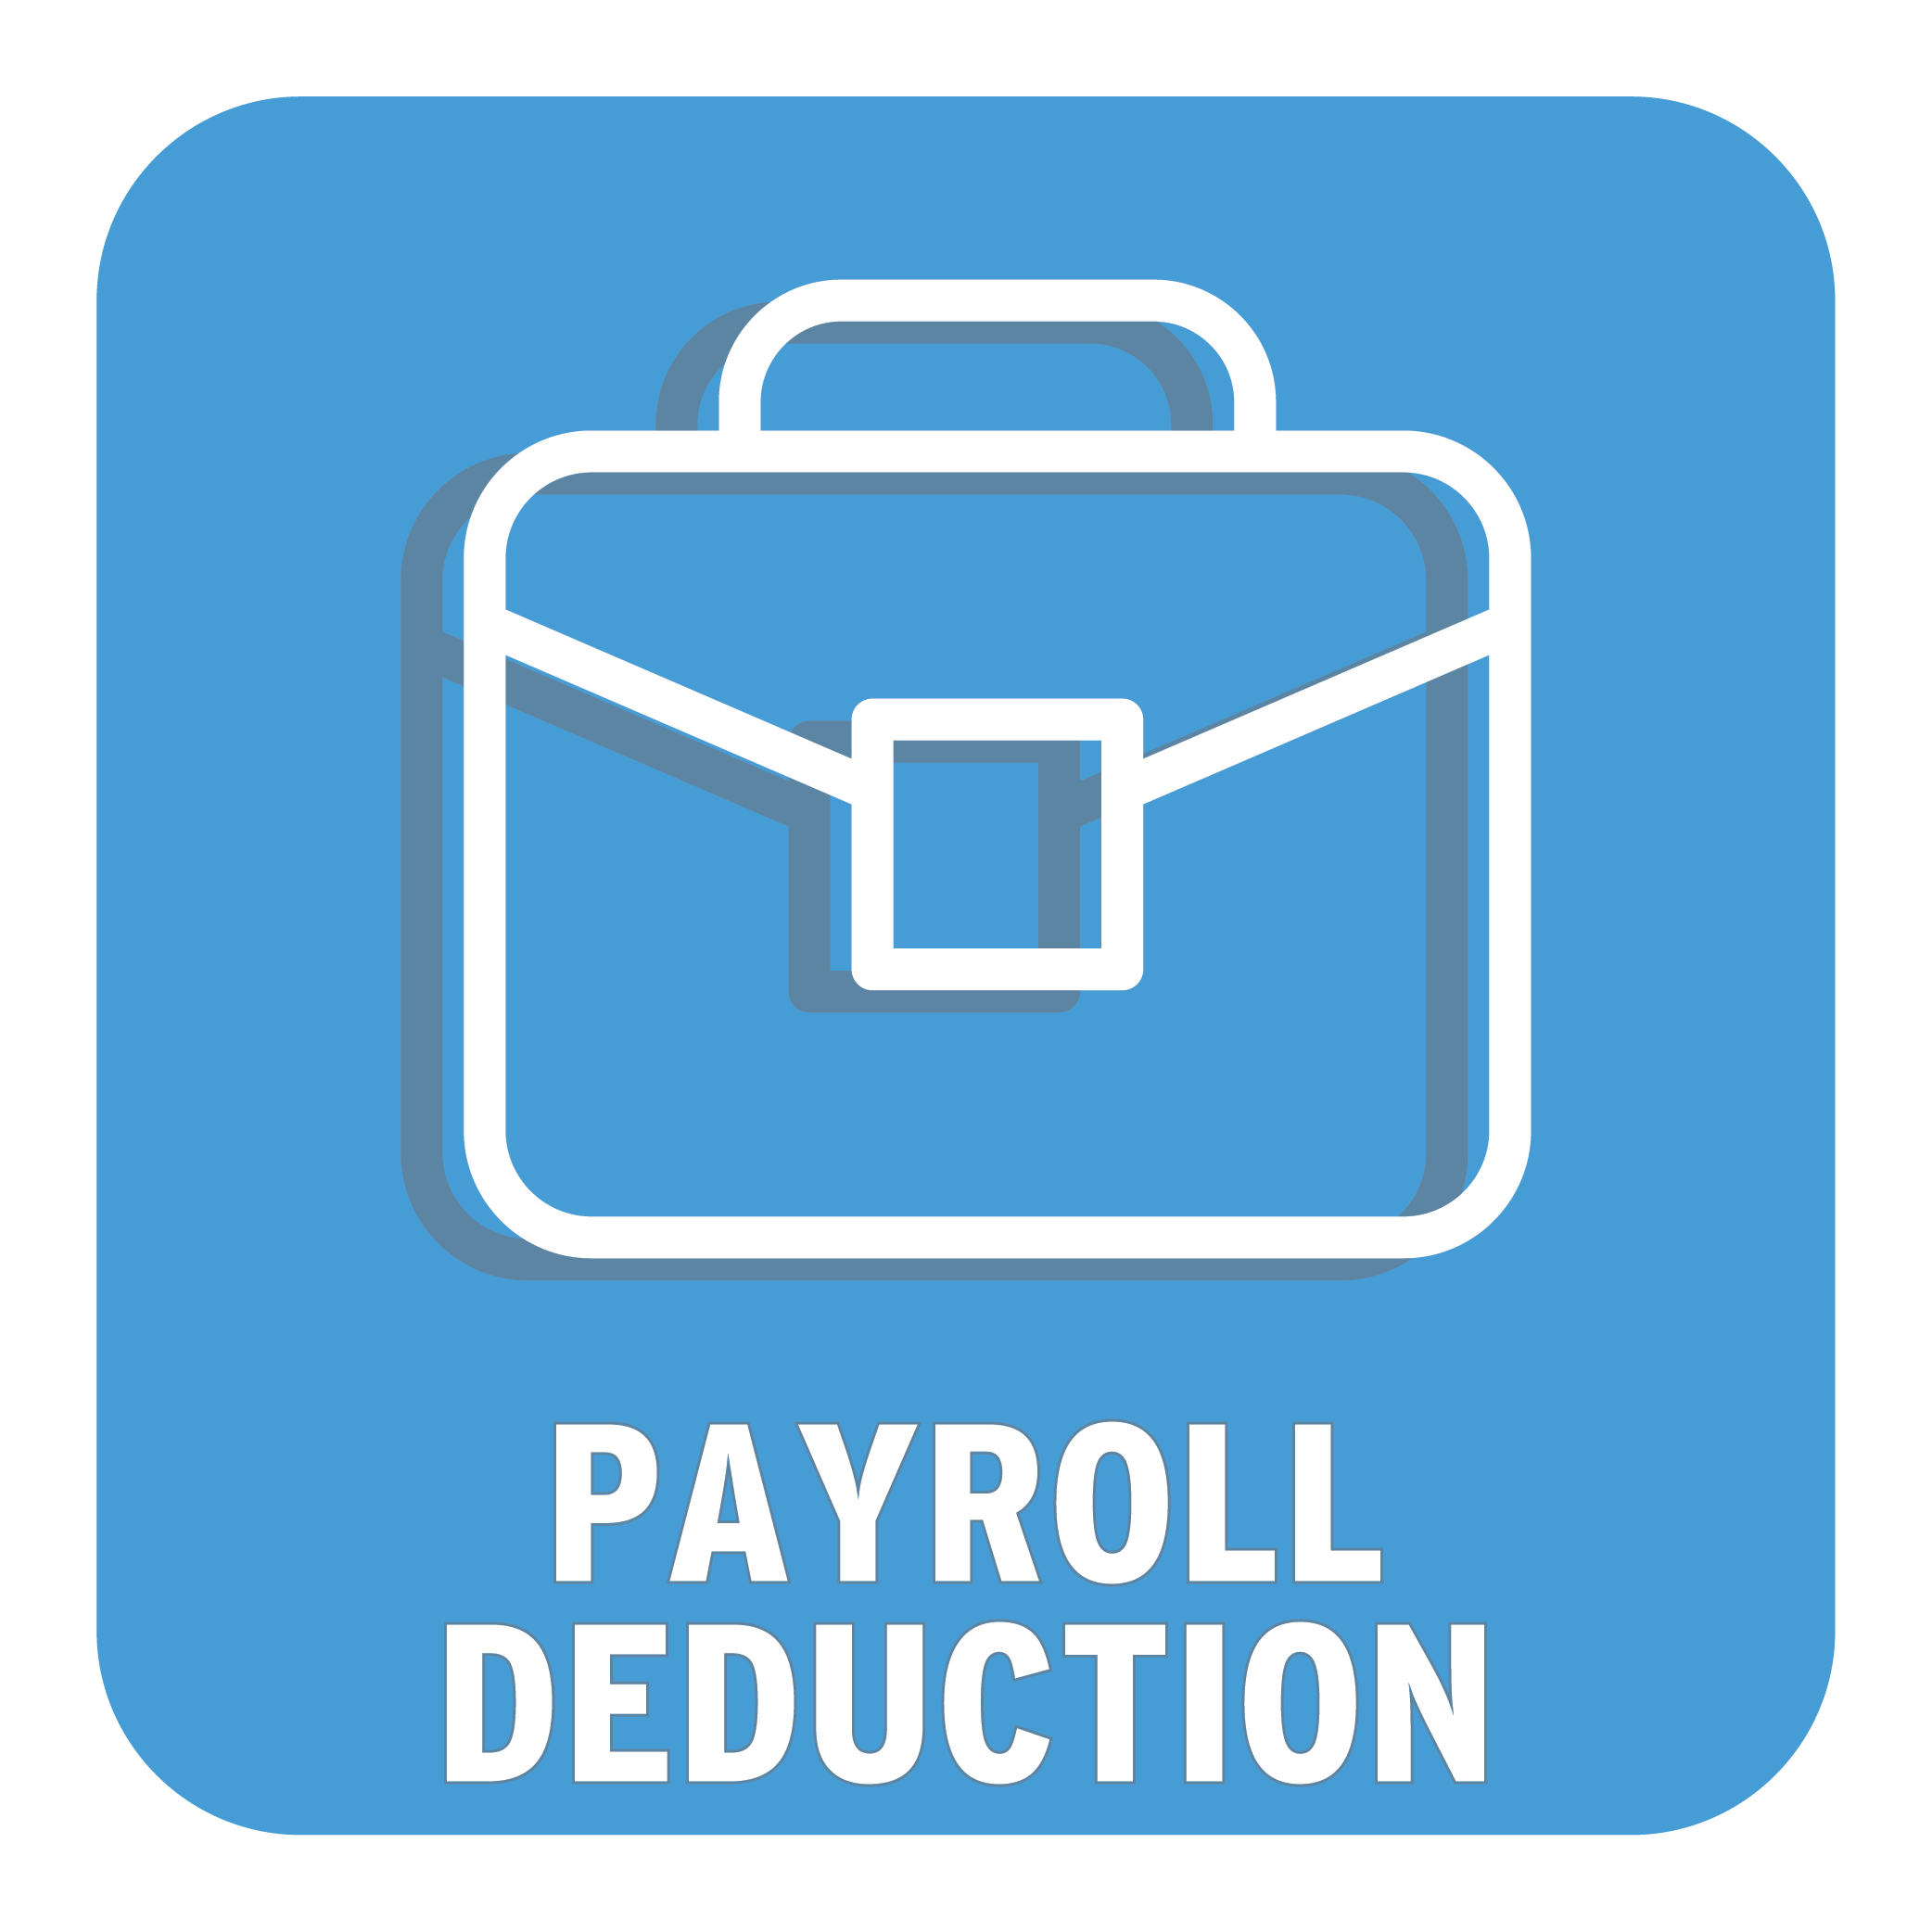 How to Give (Payroll Deduction)